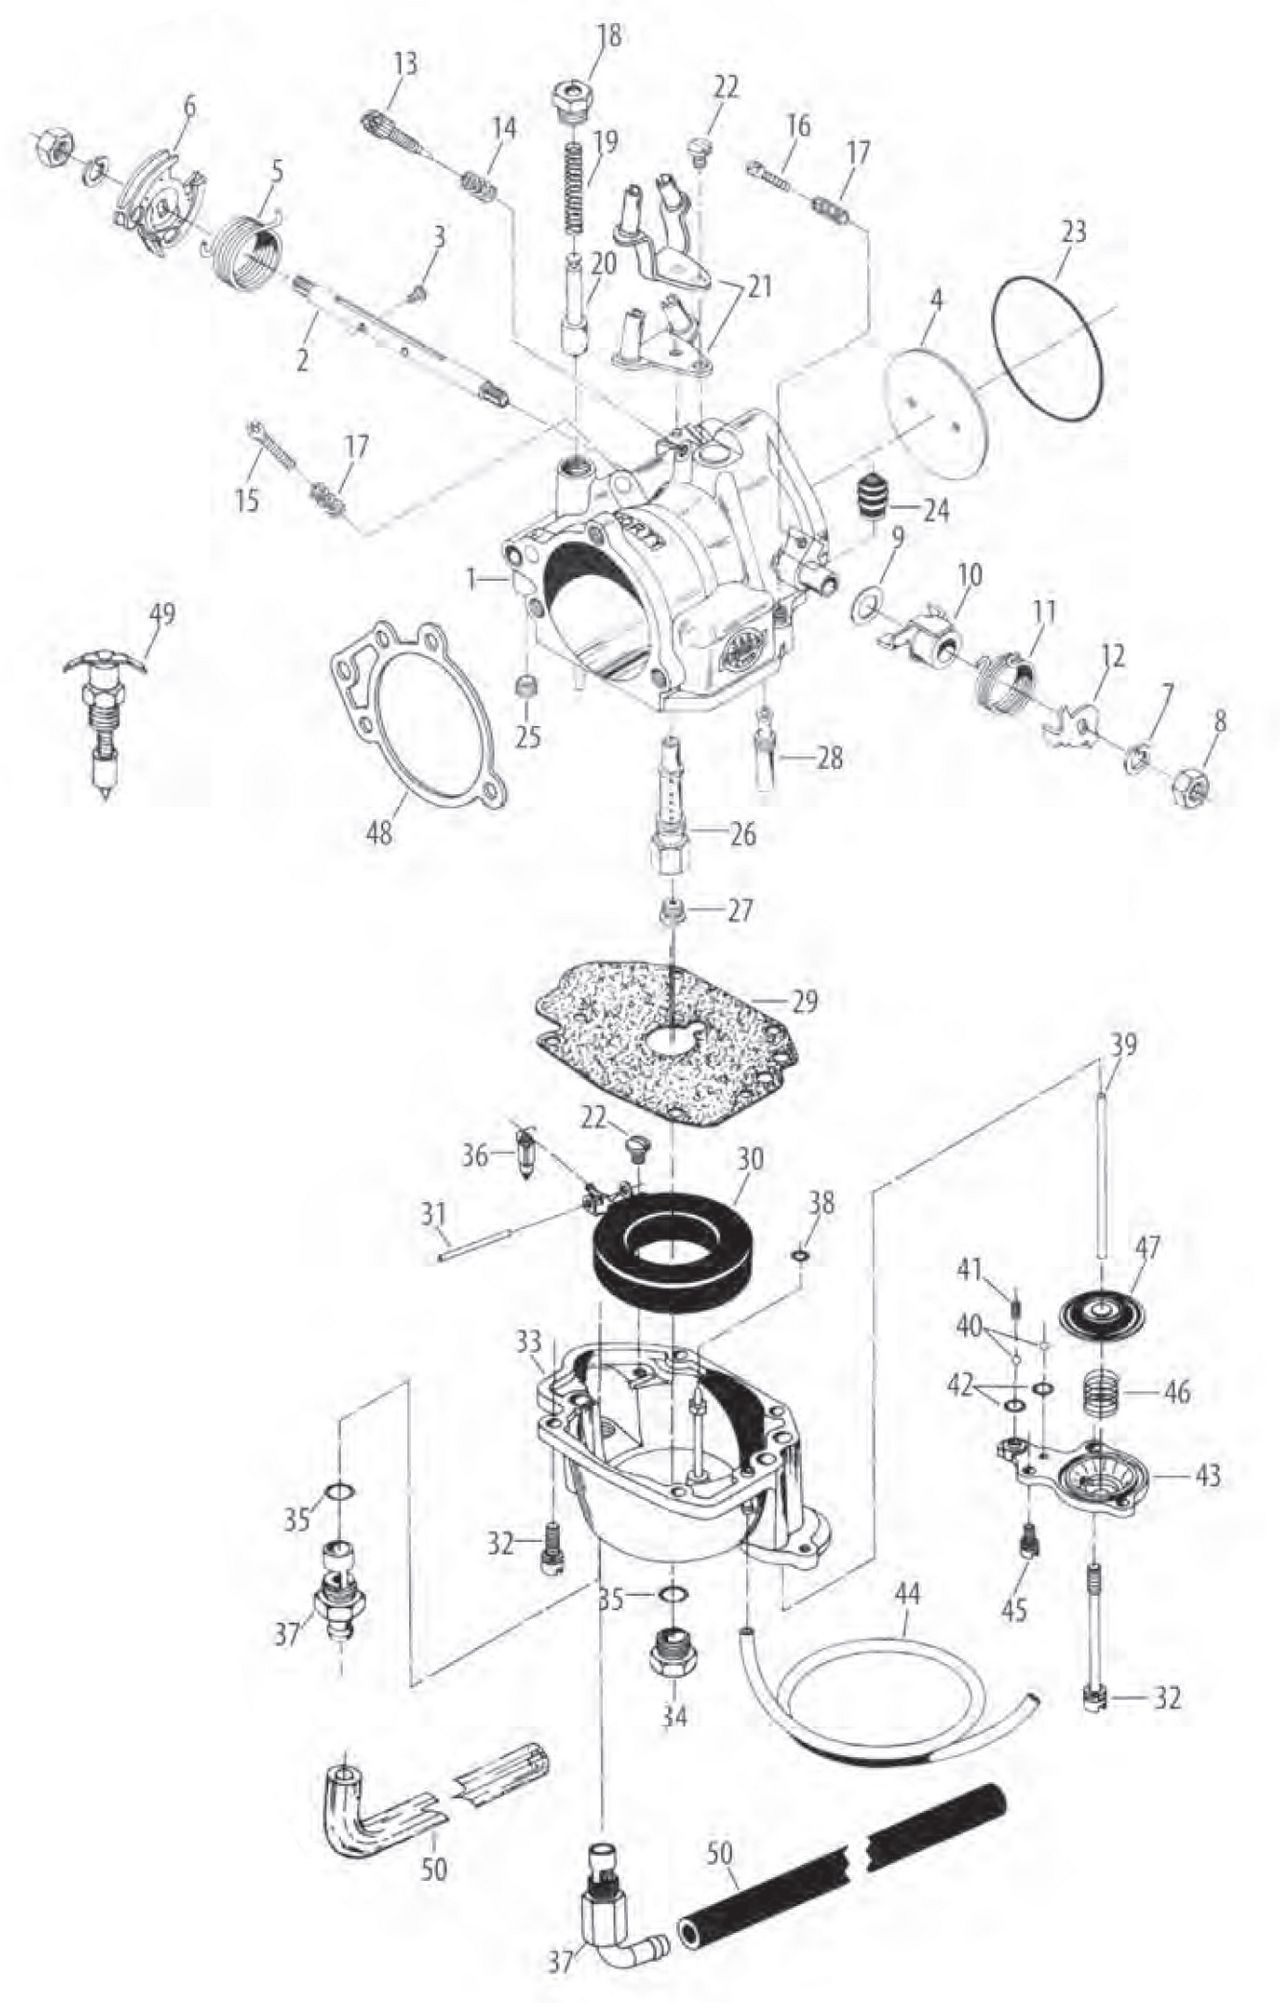 Kijima Repair Parts For S Amp S Super E Carburetor Kit